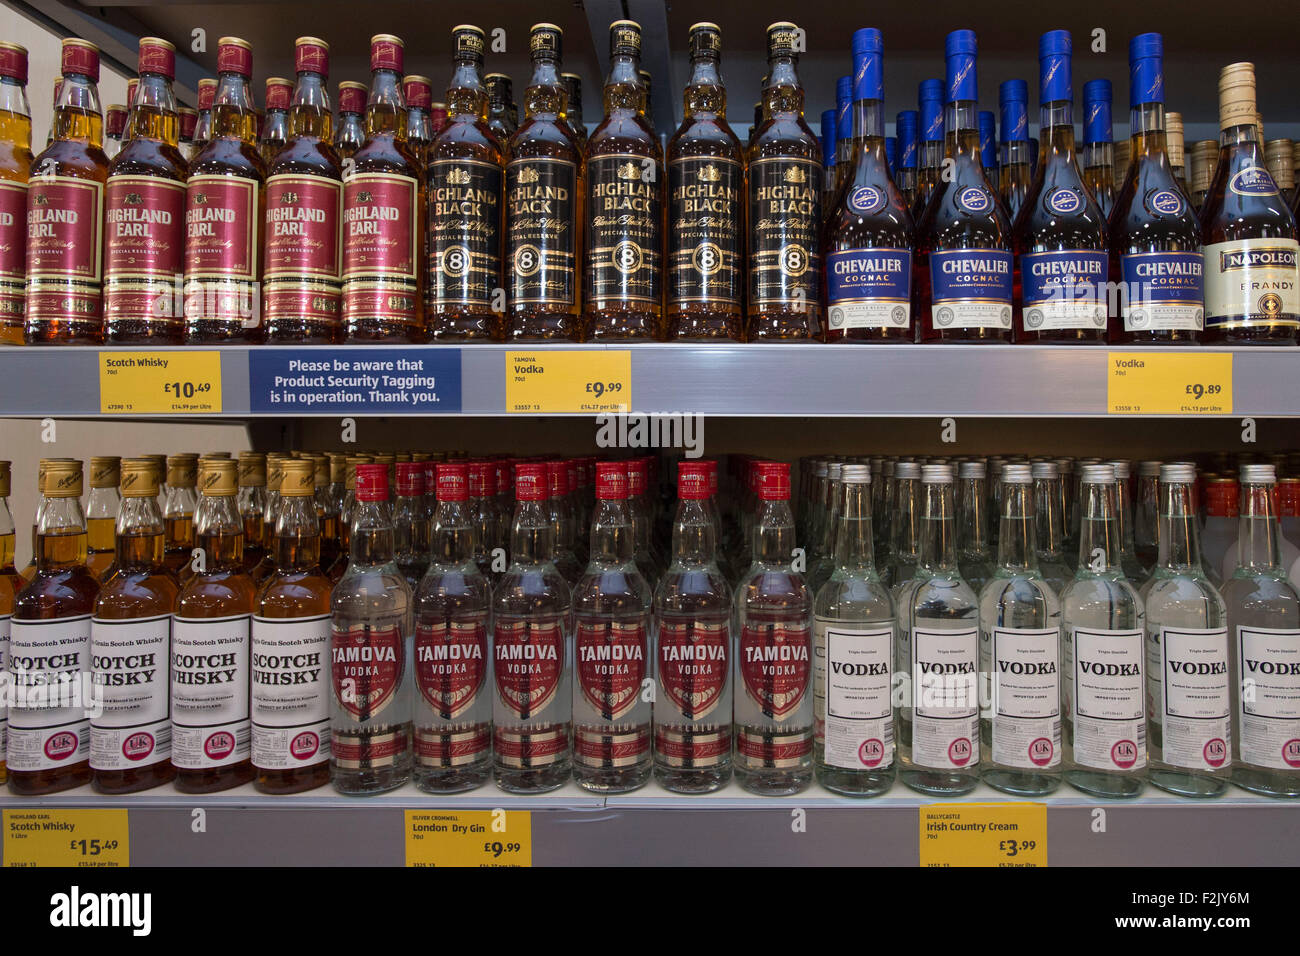 Bottles of alcoholic spirits on sale in a supermarket. - Stock Image